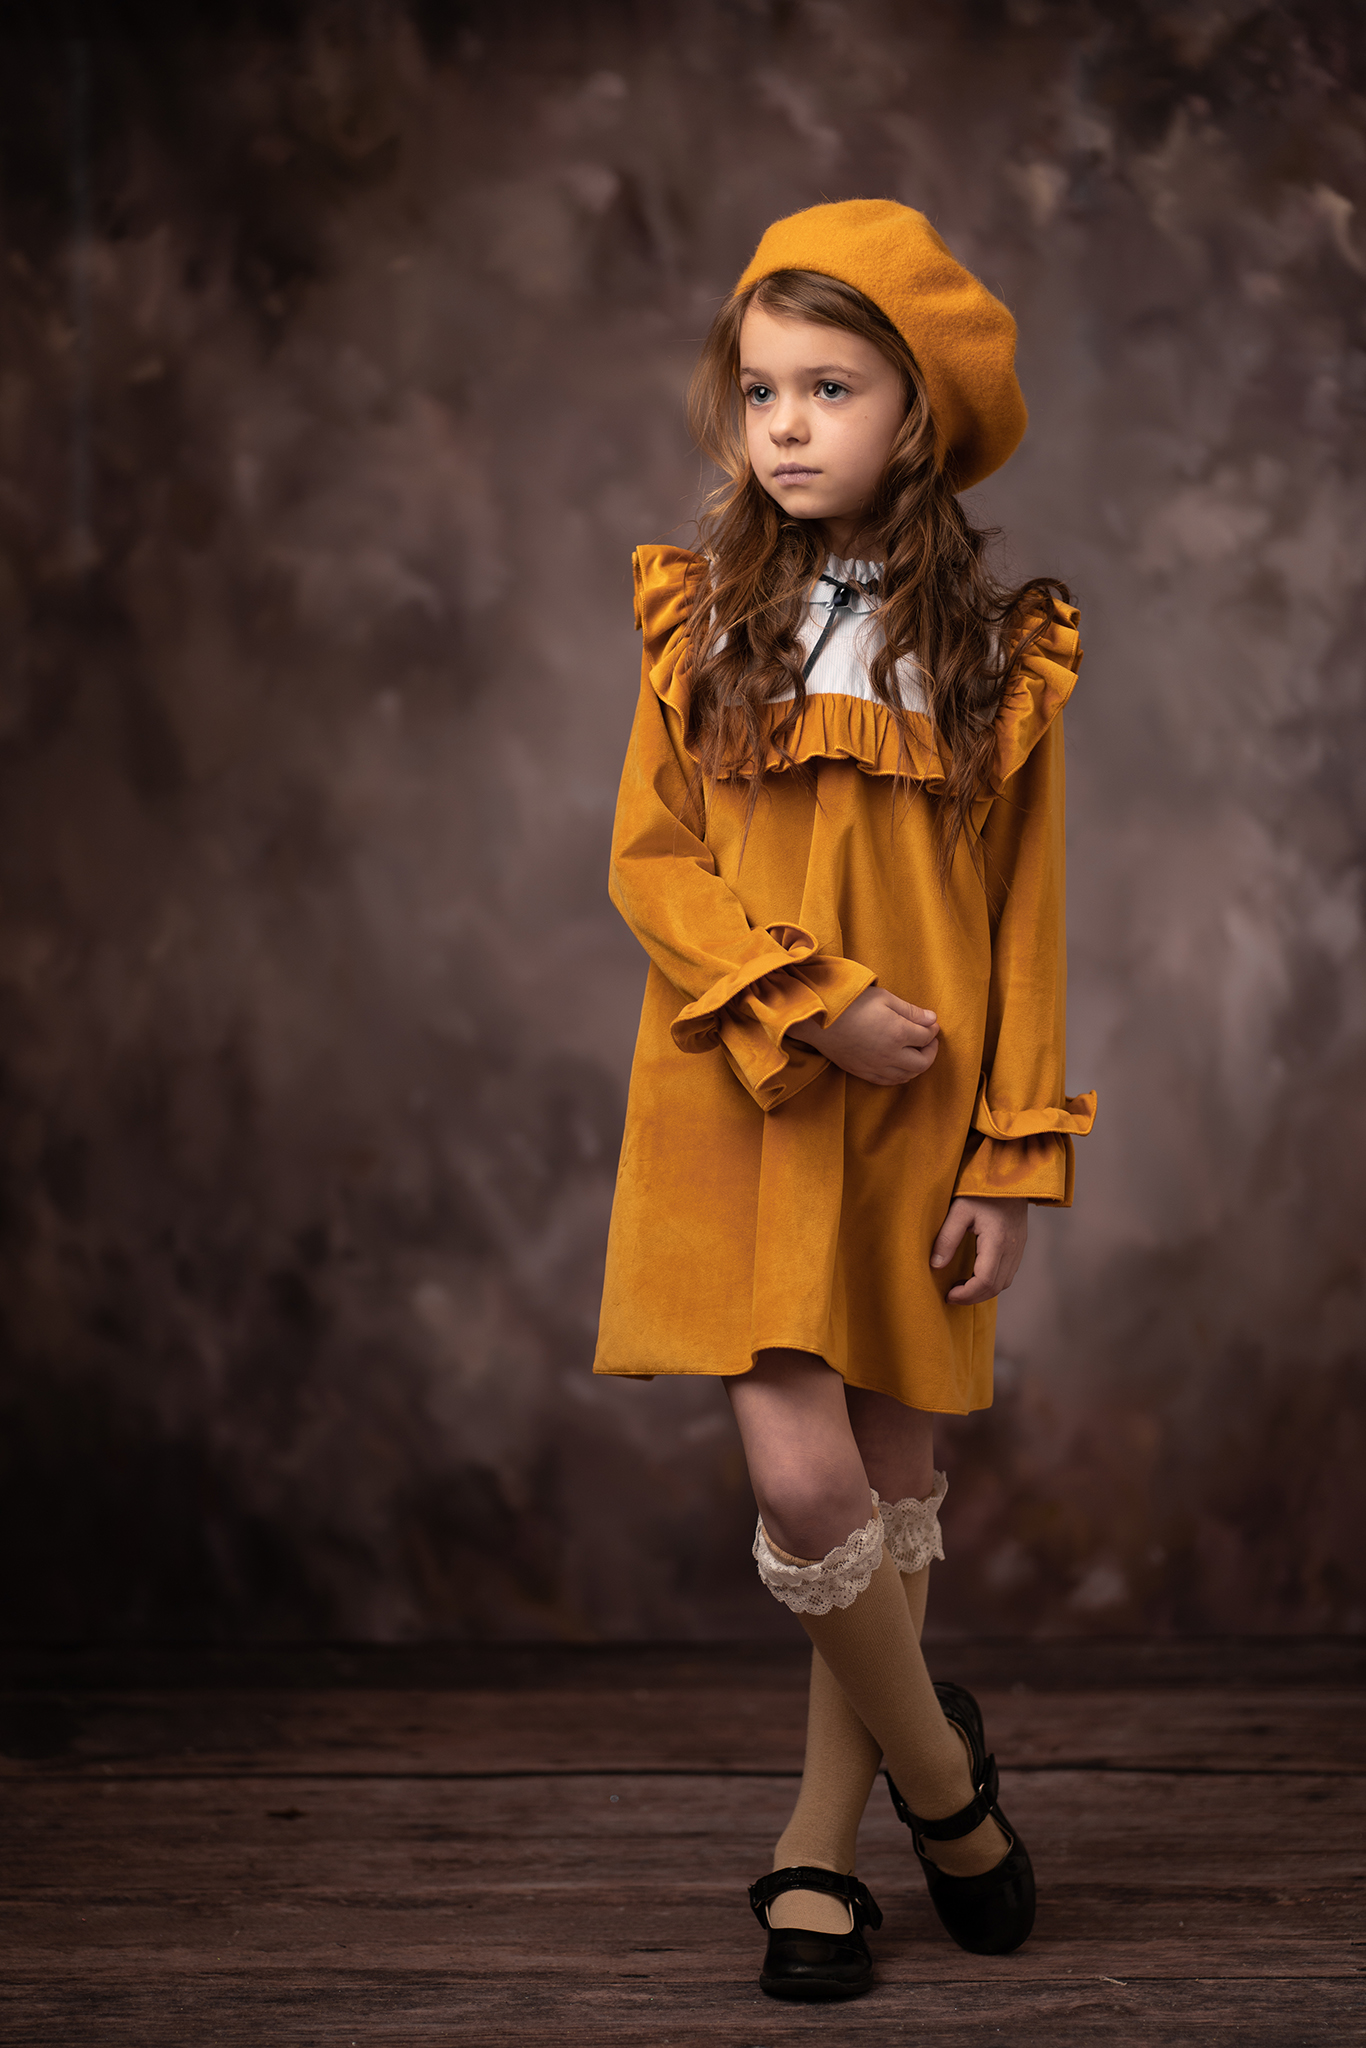 Young girl in vintage yellow outfit studio photograph by Family photographer Lancashire